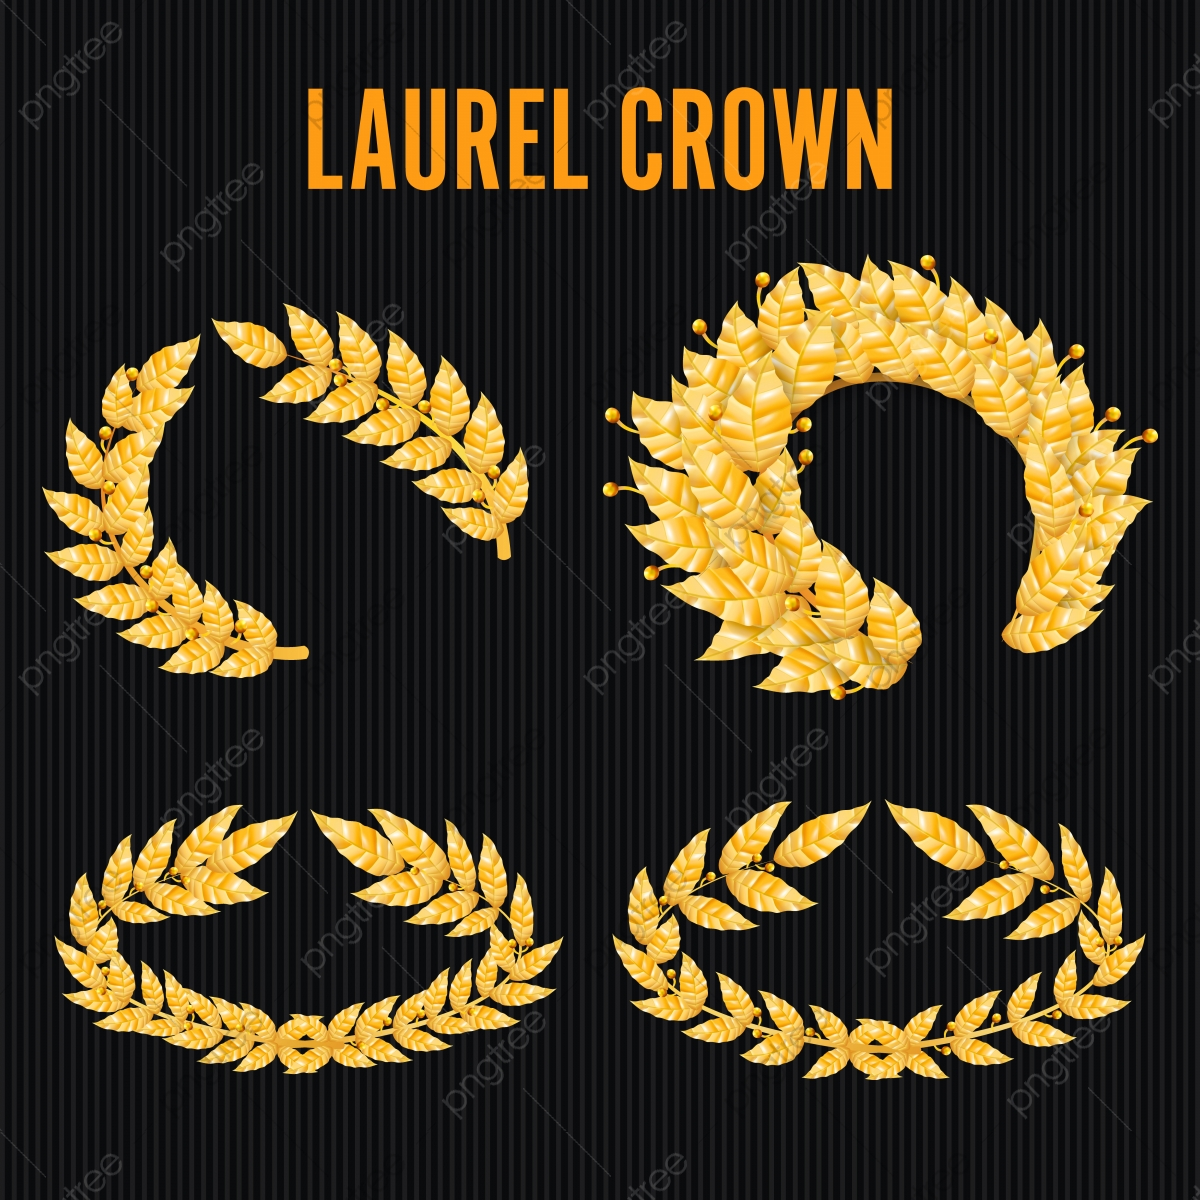 Laurel Crown Set Greek Wreath With Golden Leaves Crown Golden Laurel Png And Vector With Transparent Background For Free Download This leaf crown will be perfect for the vintage bridal look and it's. https pngtree com freepng laurel crown set greek wreath with golden leaves 5316383 html